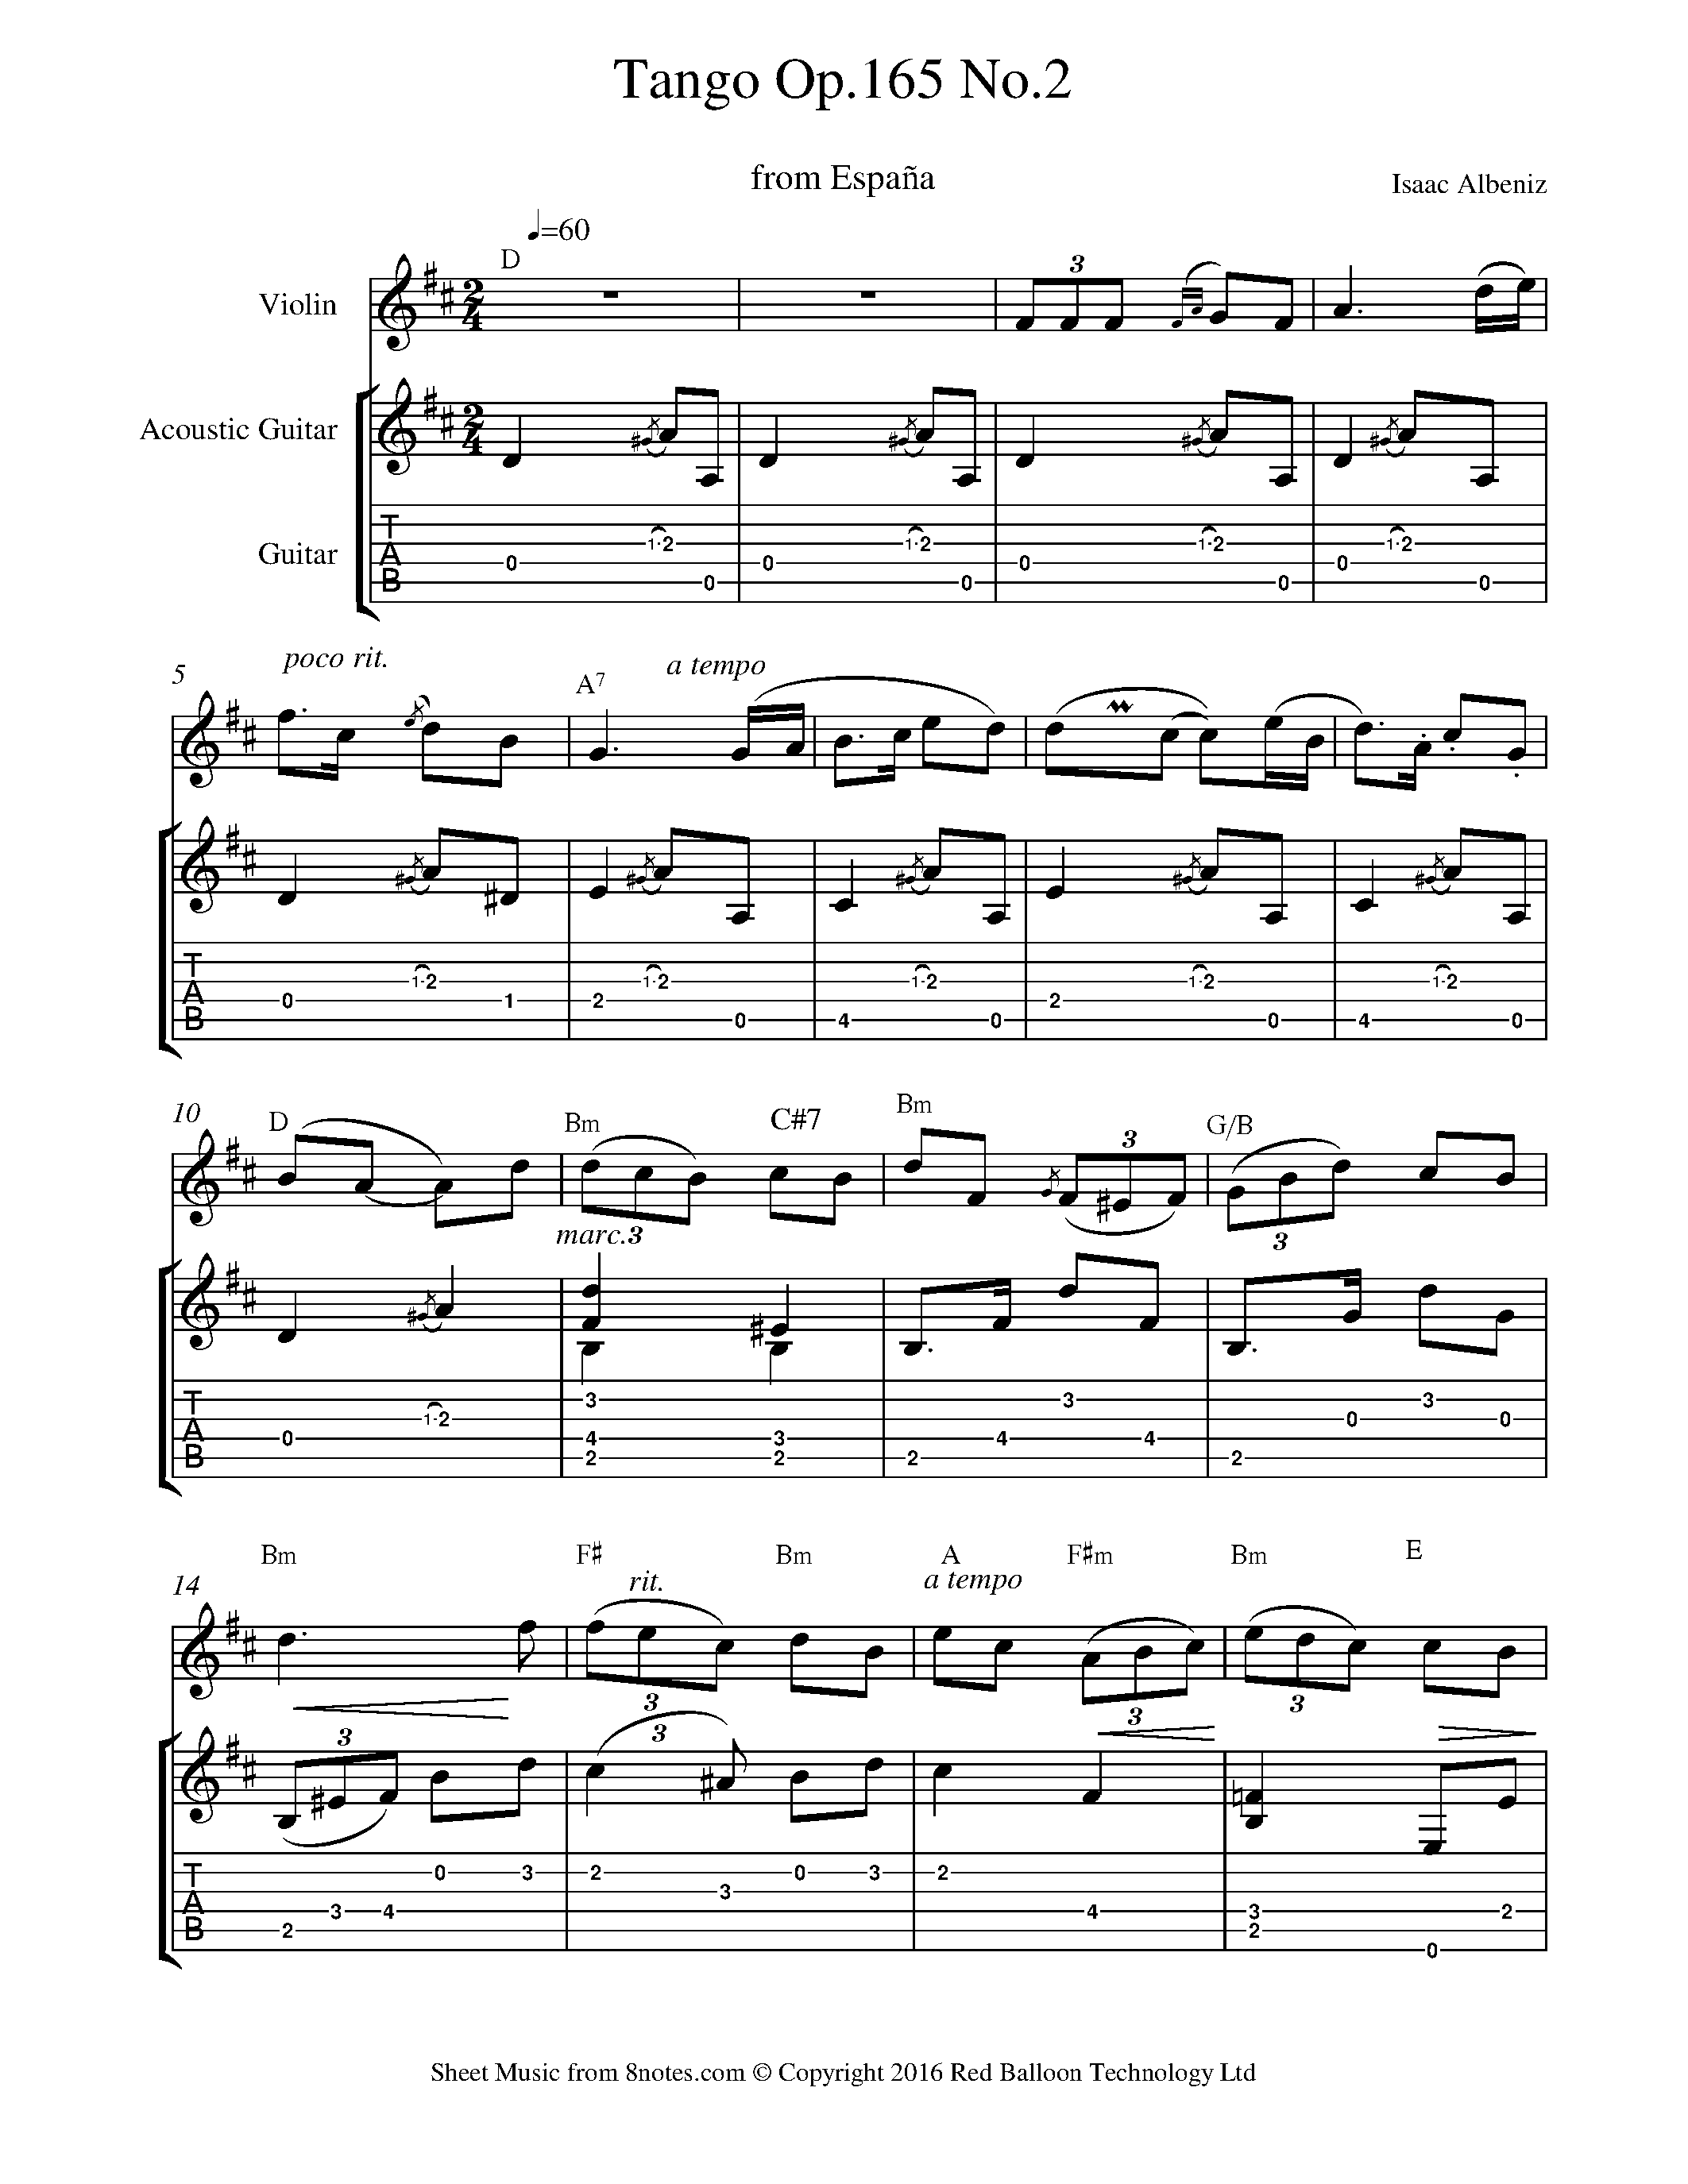 isaac alb niz tango no 2 from espana sheet music for violin guitar duet. Black Bedroom Furniture Sets. Home Design Ideas